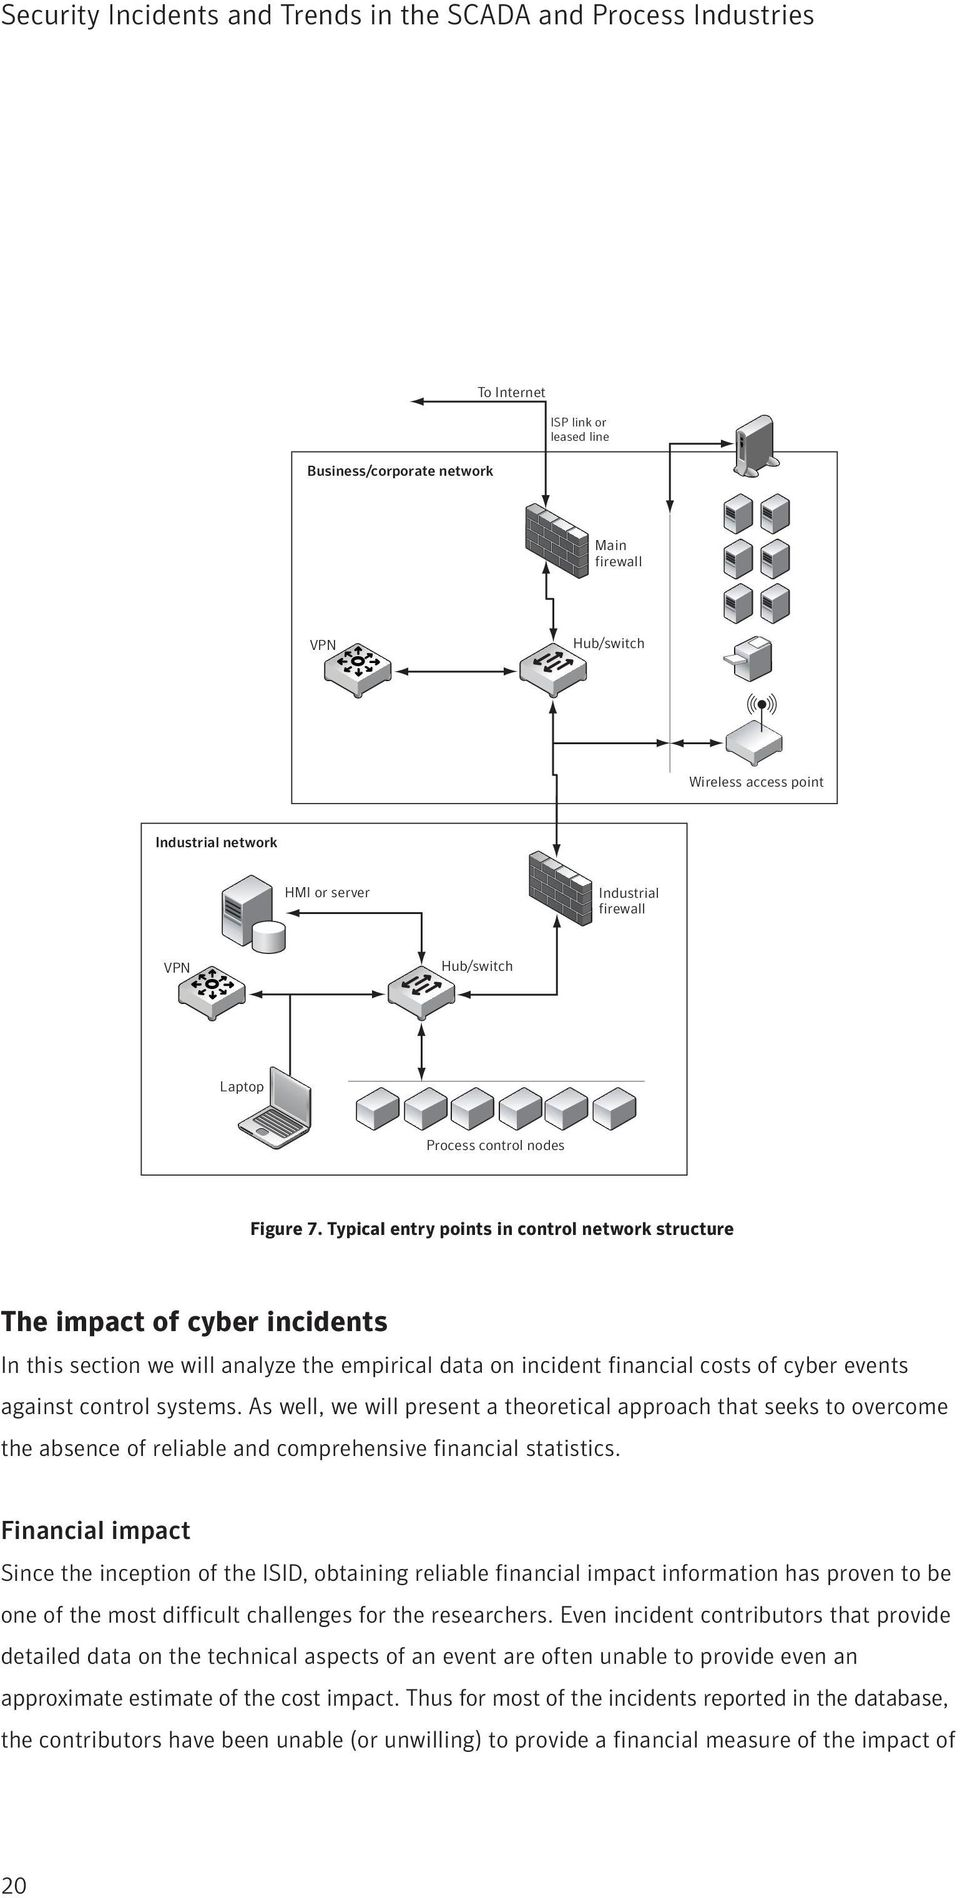 Typical entry points in control network structure The impact of cyber incidents In this section we will analyze the empirical data on incident financial costs of cyber events against control systems.